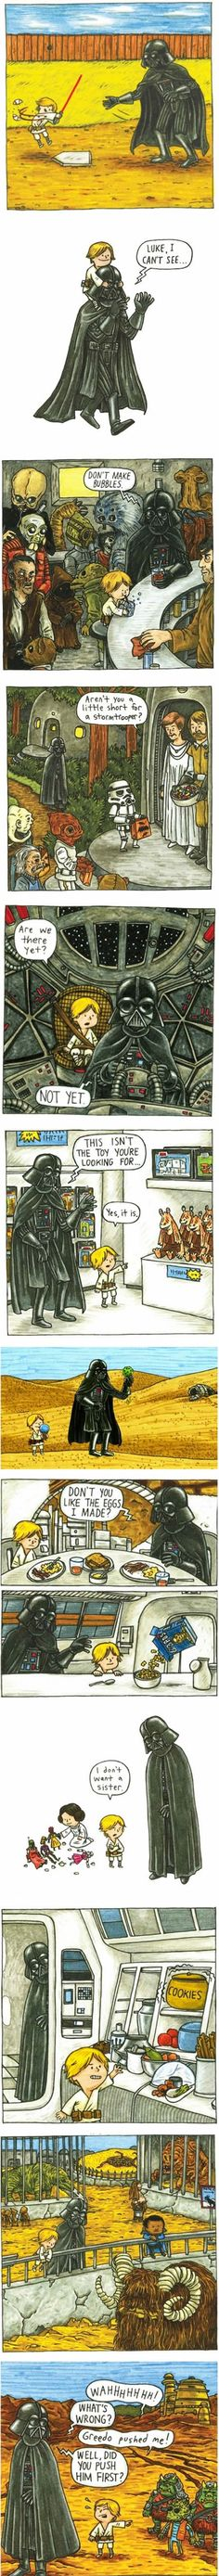 What if Darth Vader had been a Good Father